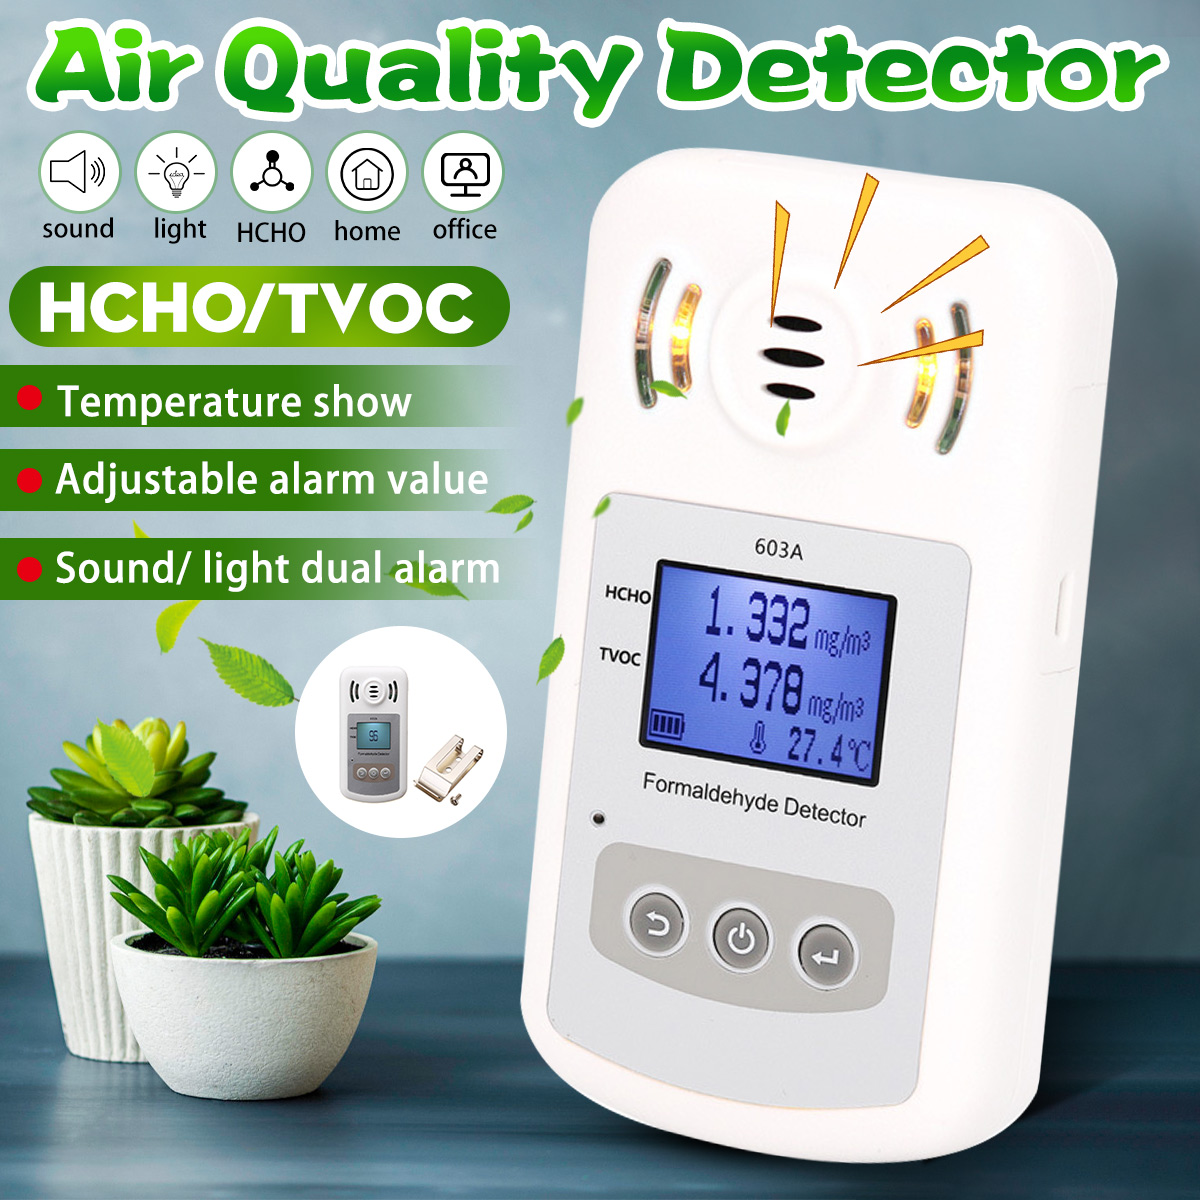 Portable Air Quality Monitor TVOC Formaldehyde Tester